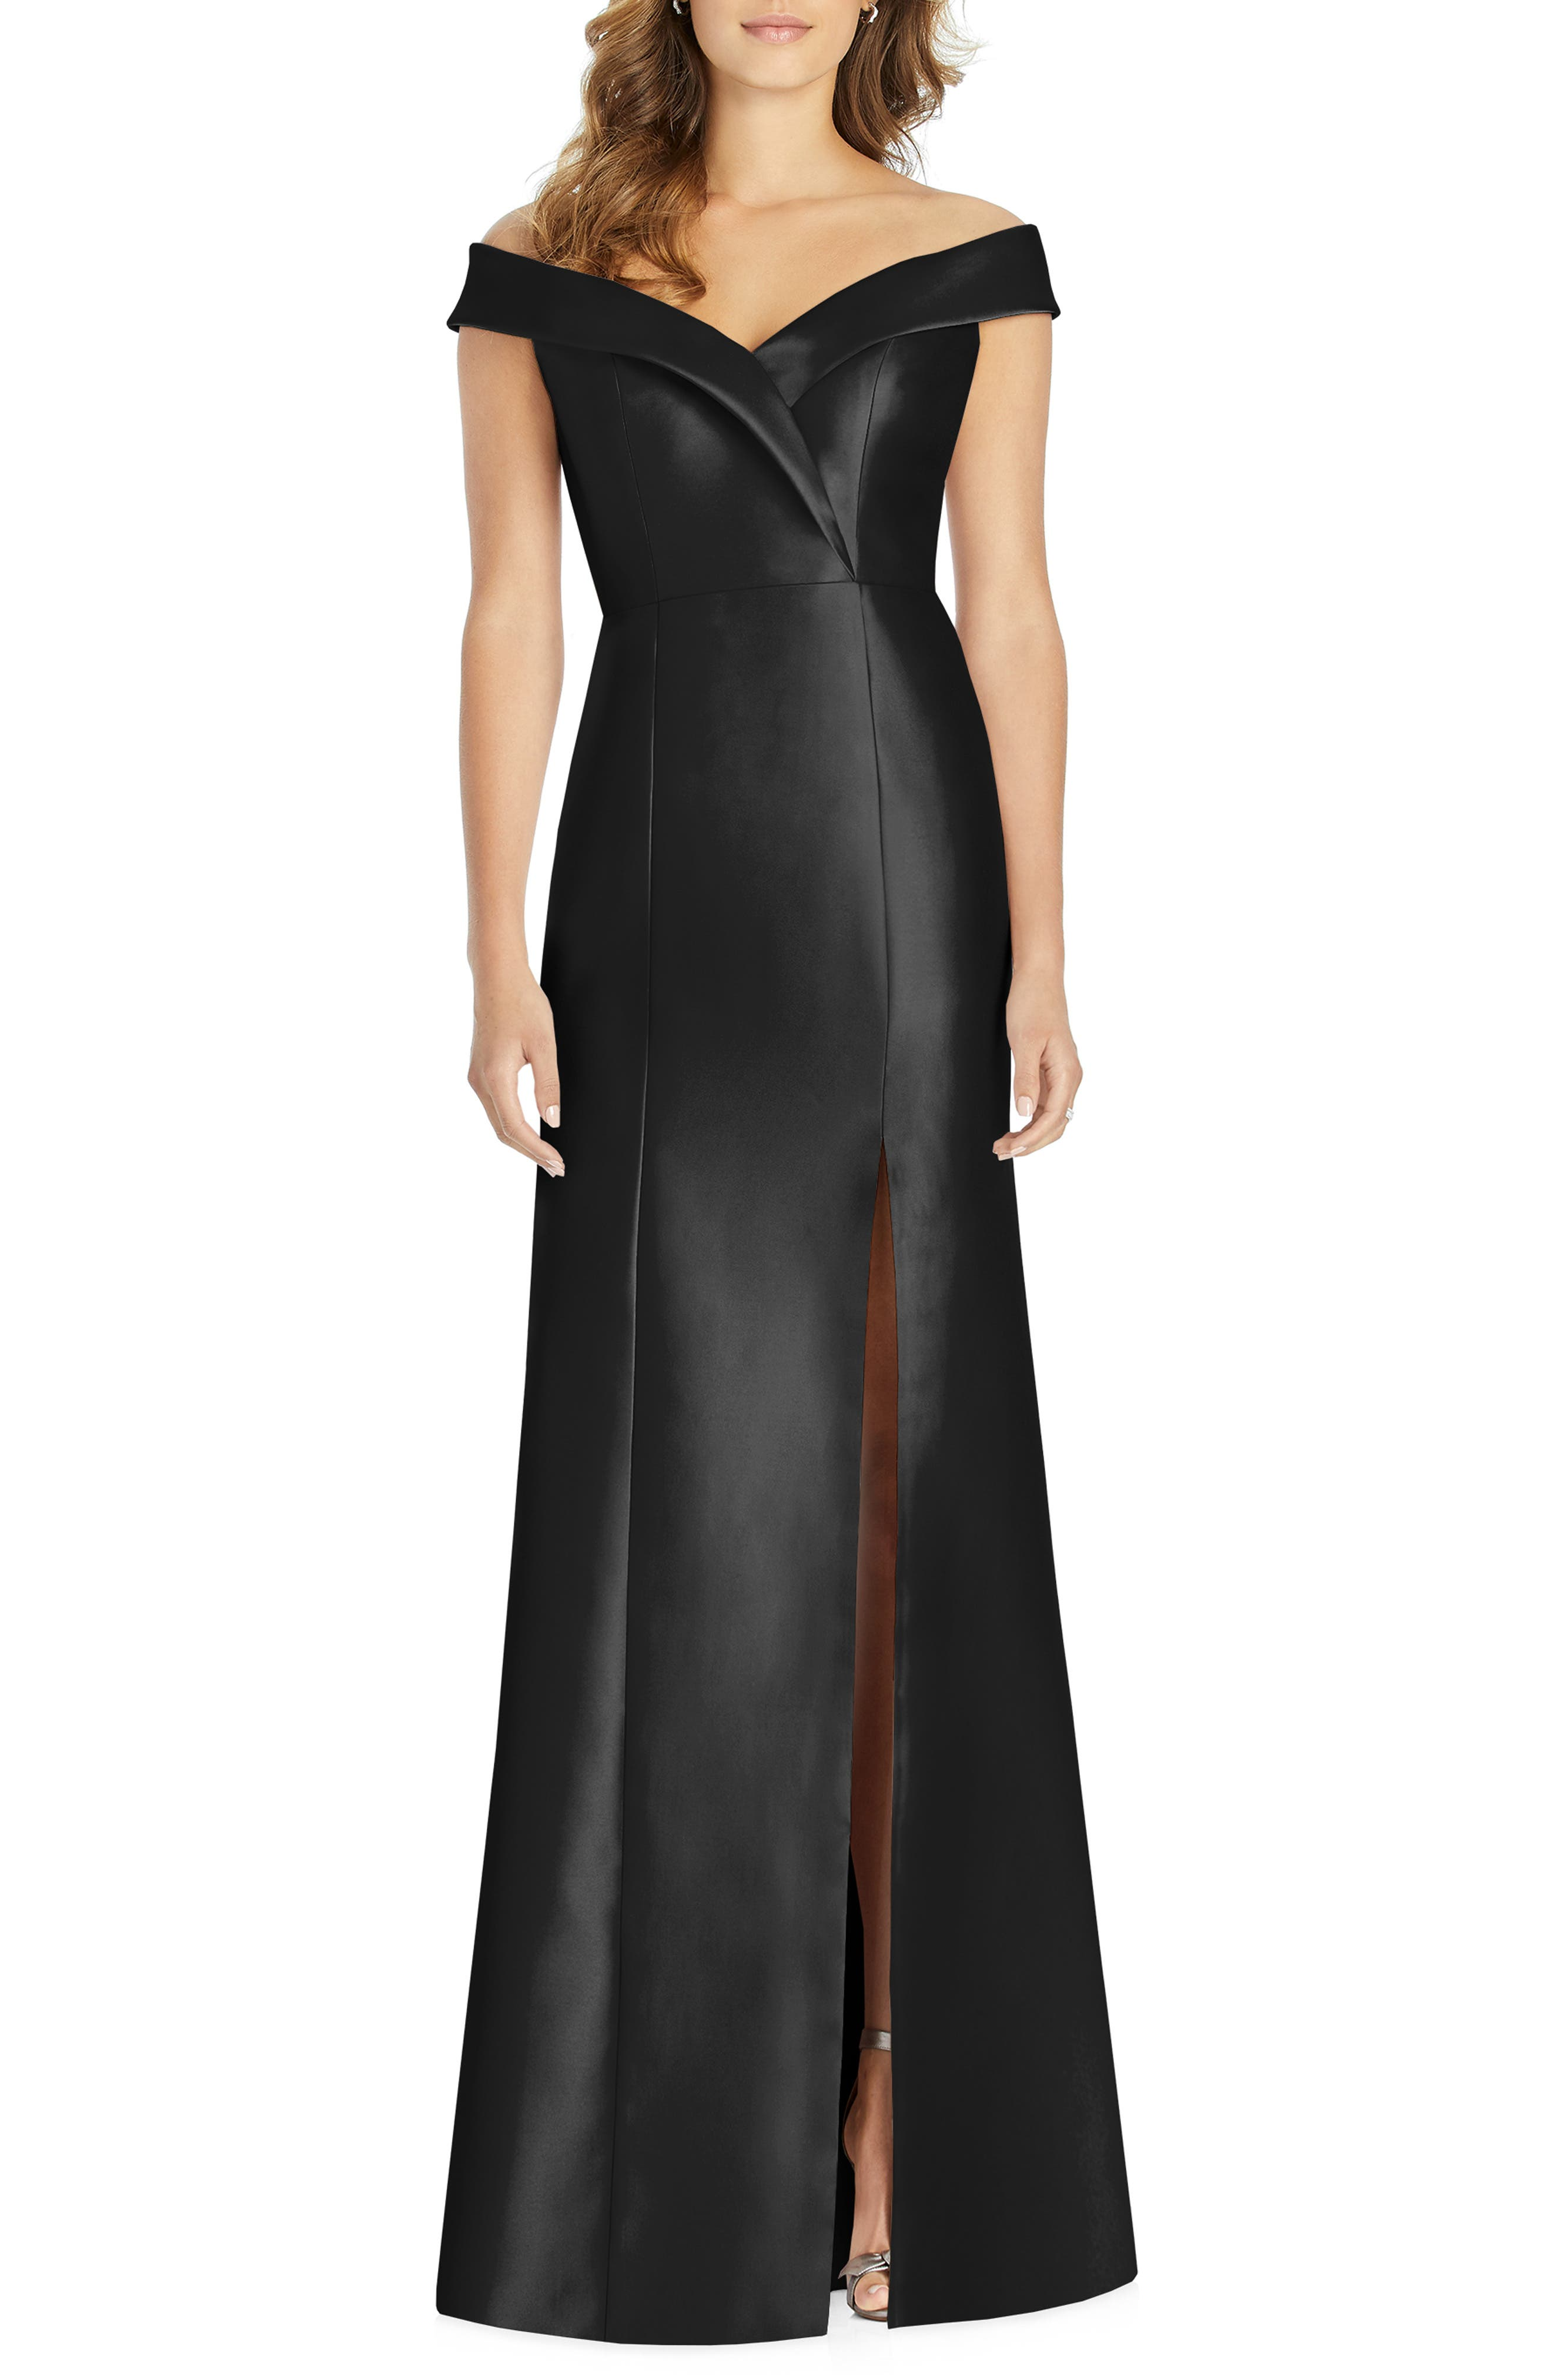 ALFRED SUNG, Portrait Collar Satin Gown, Main thumbnail 1, color, BLACK